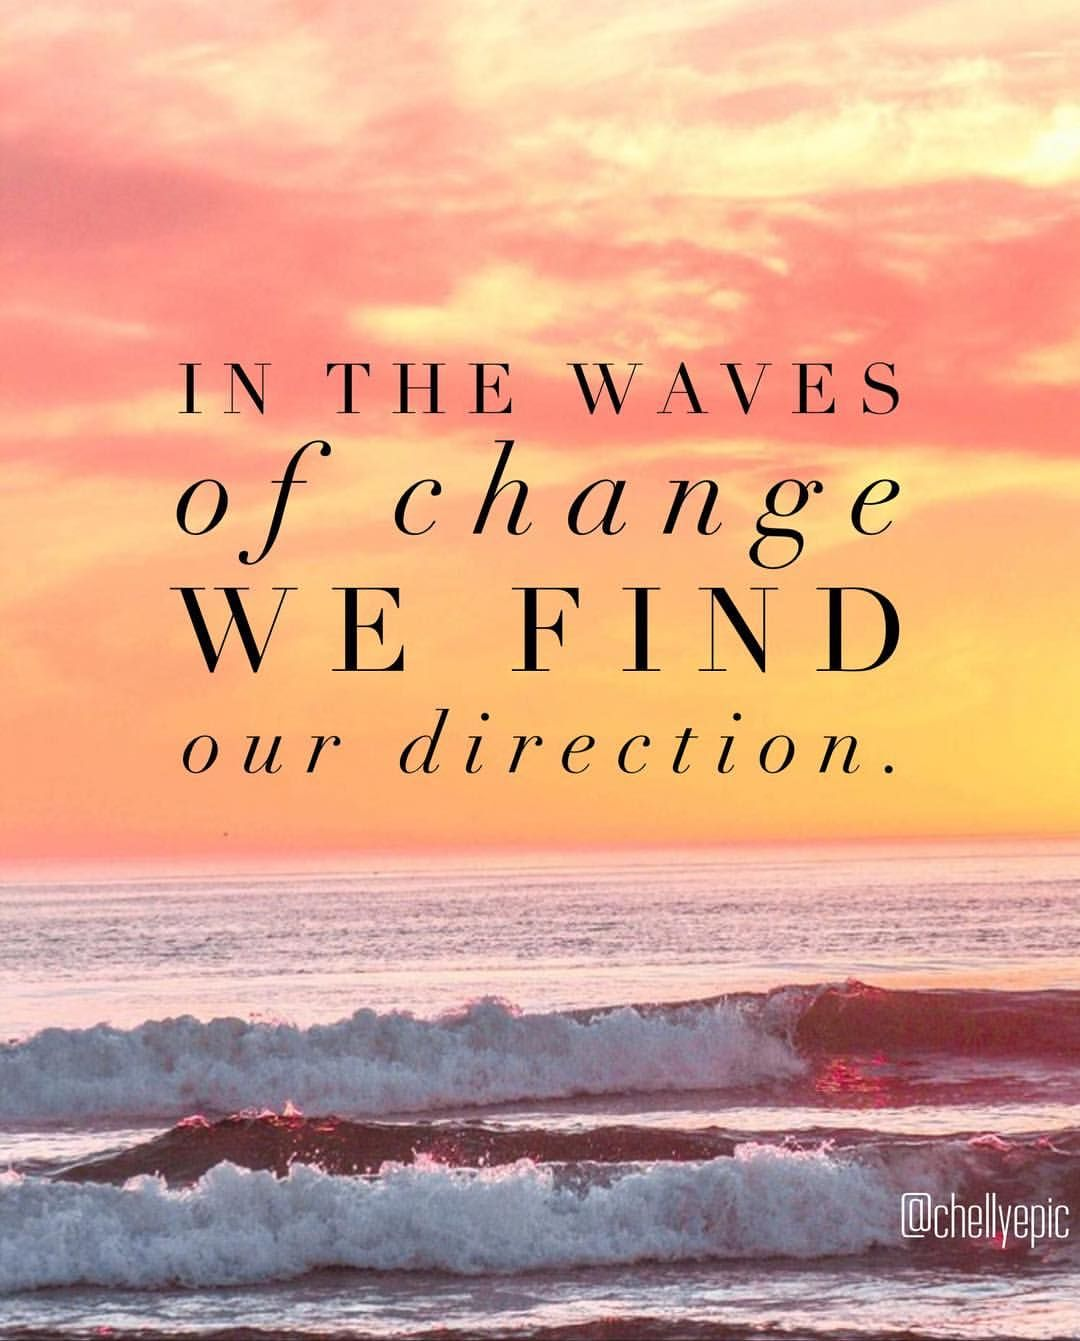 In The Waves Of Change We Find Our Direction Chellyepic Instagram Photo California Kate Www Californ My Children Quotes Perfection Quotes Quotable Quotes